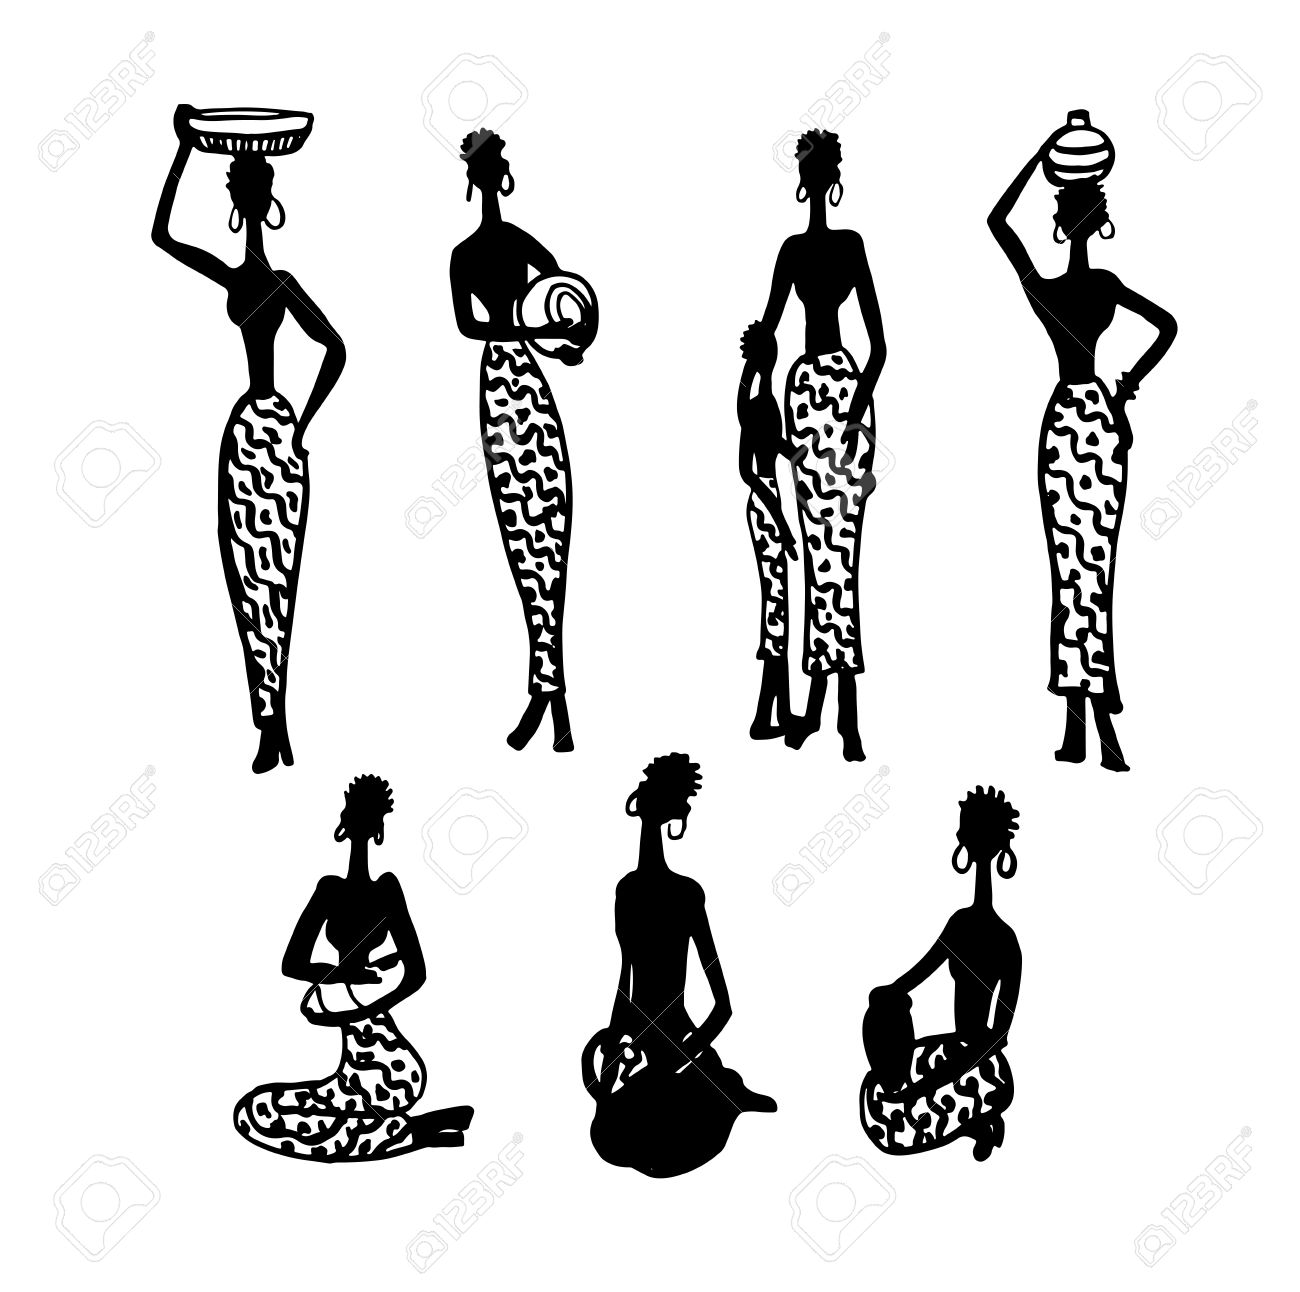 1300x1292 Stock Vector Vector Black Silhouette Of Women On A Map Of Africa